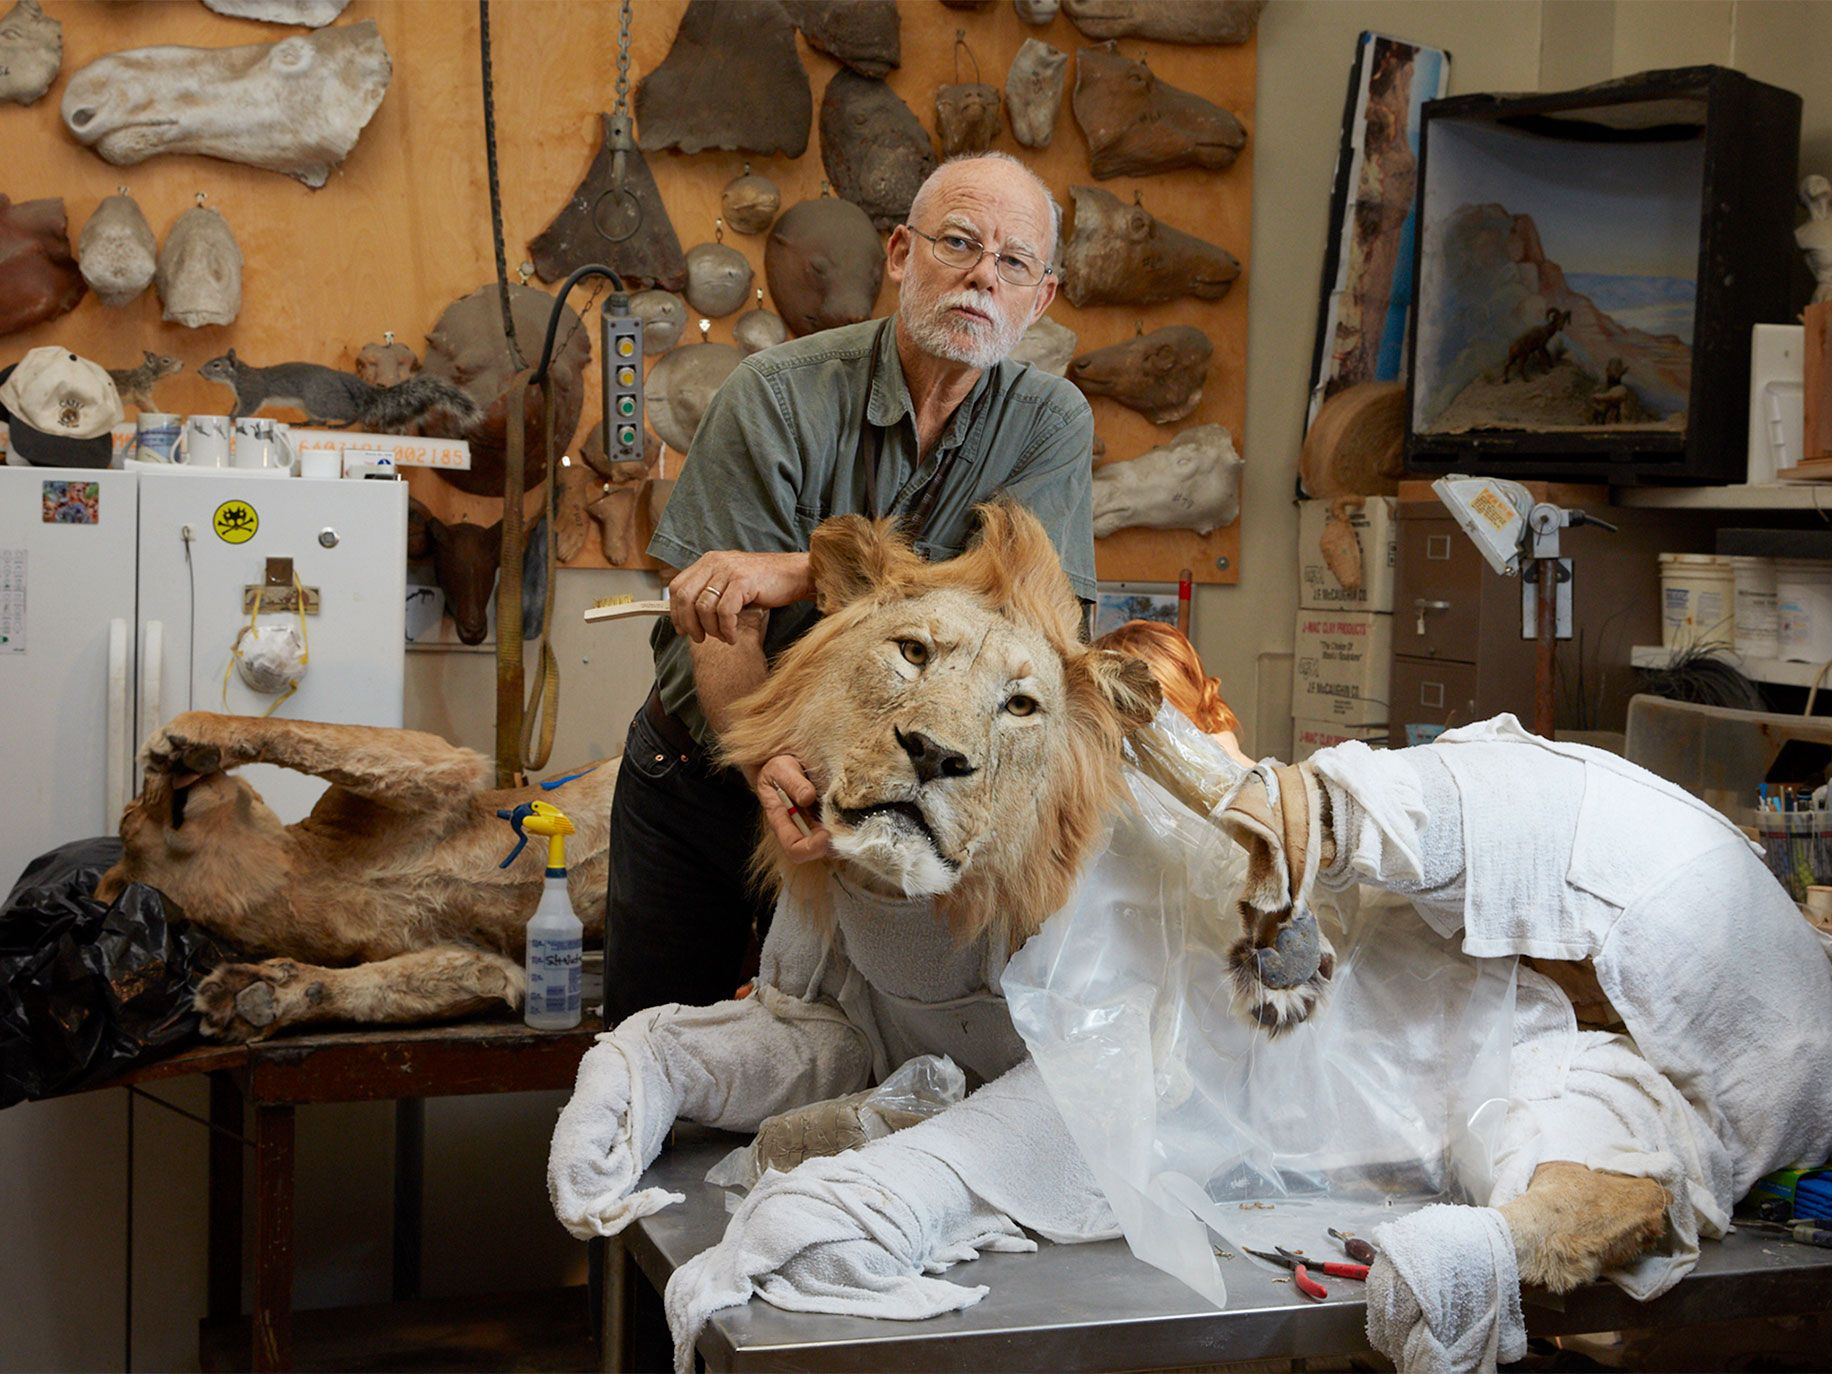 Taxidermist Tim Bovard in his workshop at the Natural History Museum in Los Angeles. Damp towels help keep the recently defrosted Tanzanian lion skins supple and malleable.